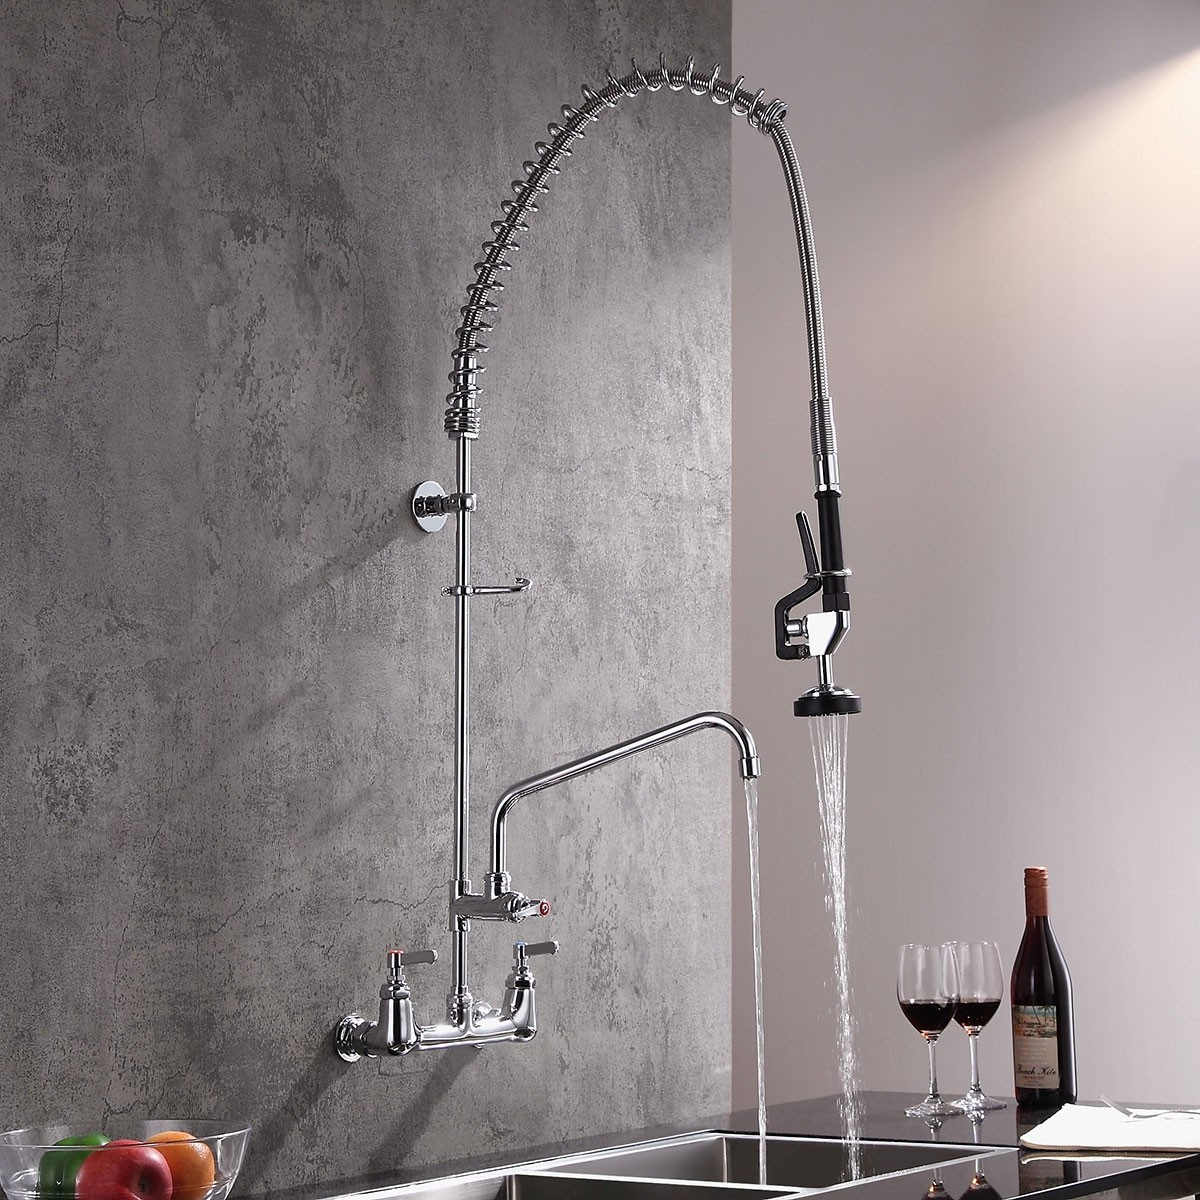 Details about Commercial Pull Down Spring Sprayer Swiveling Wall Mounted  Kitchen Sink Faucet